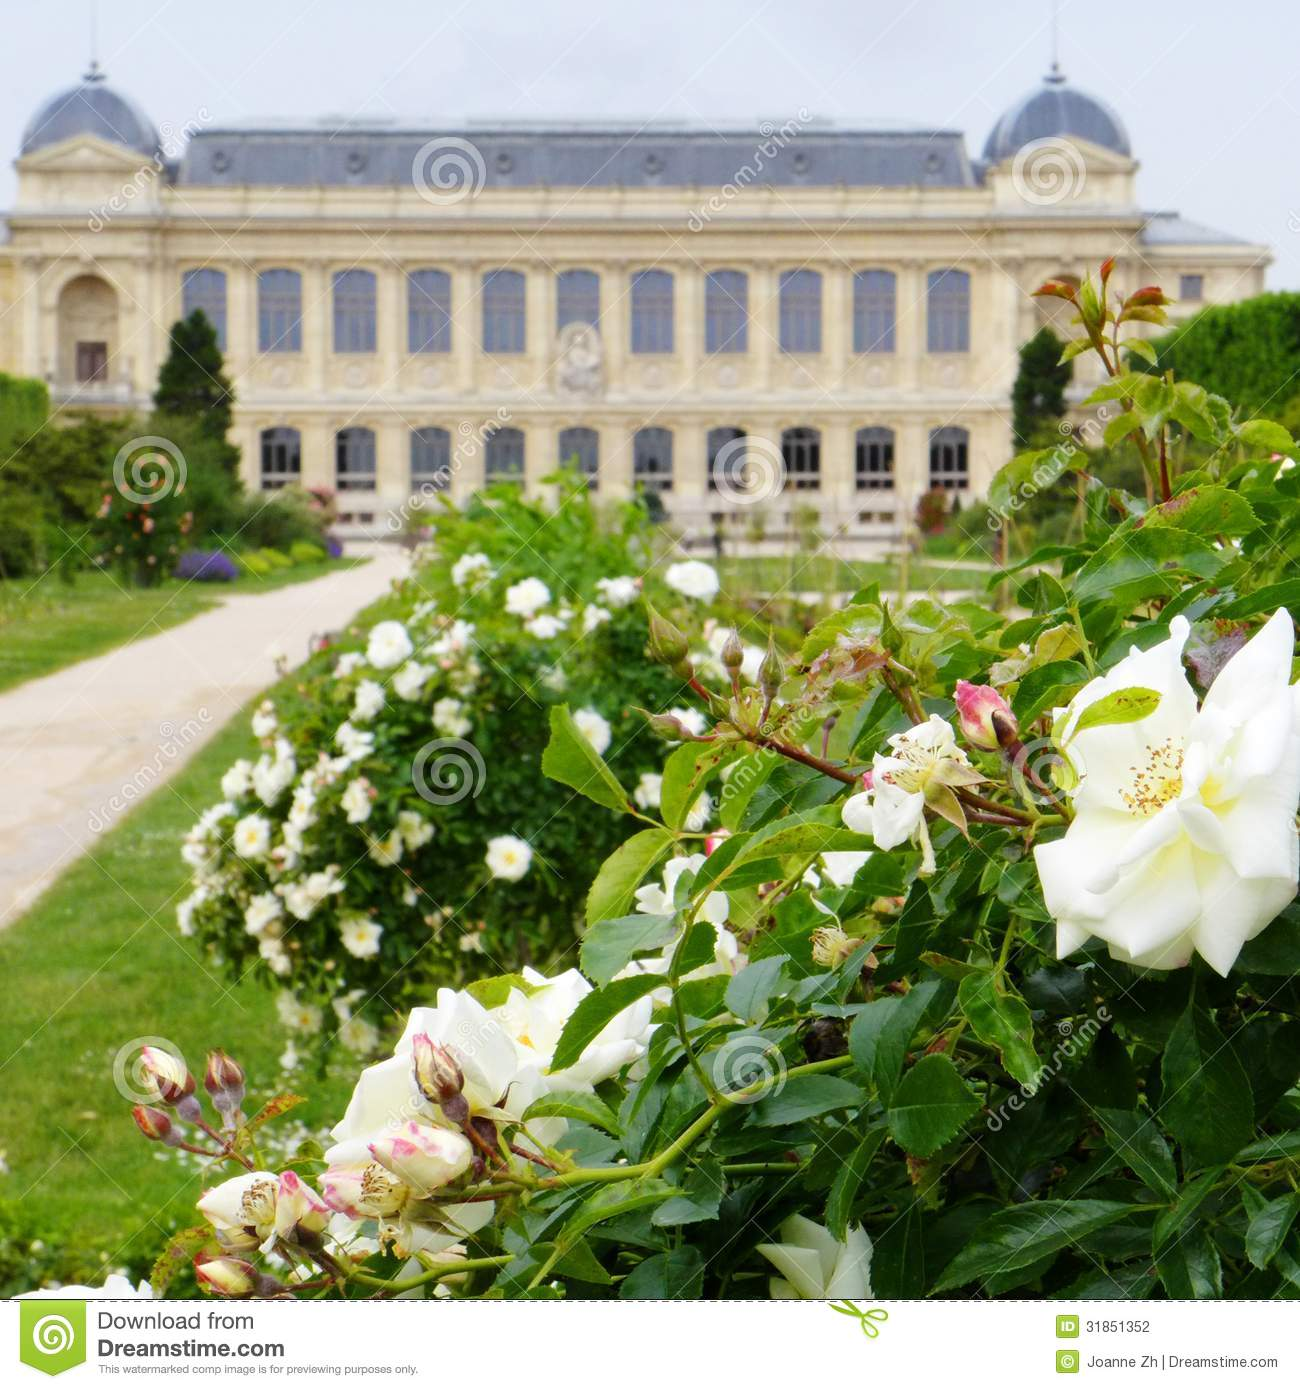 Jardin des plantes paris france stock photo image for Plante ornementale des jardins